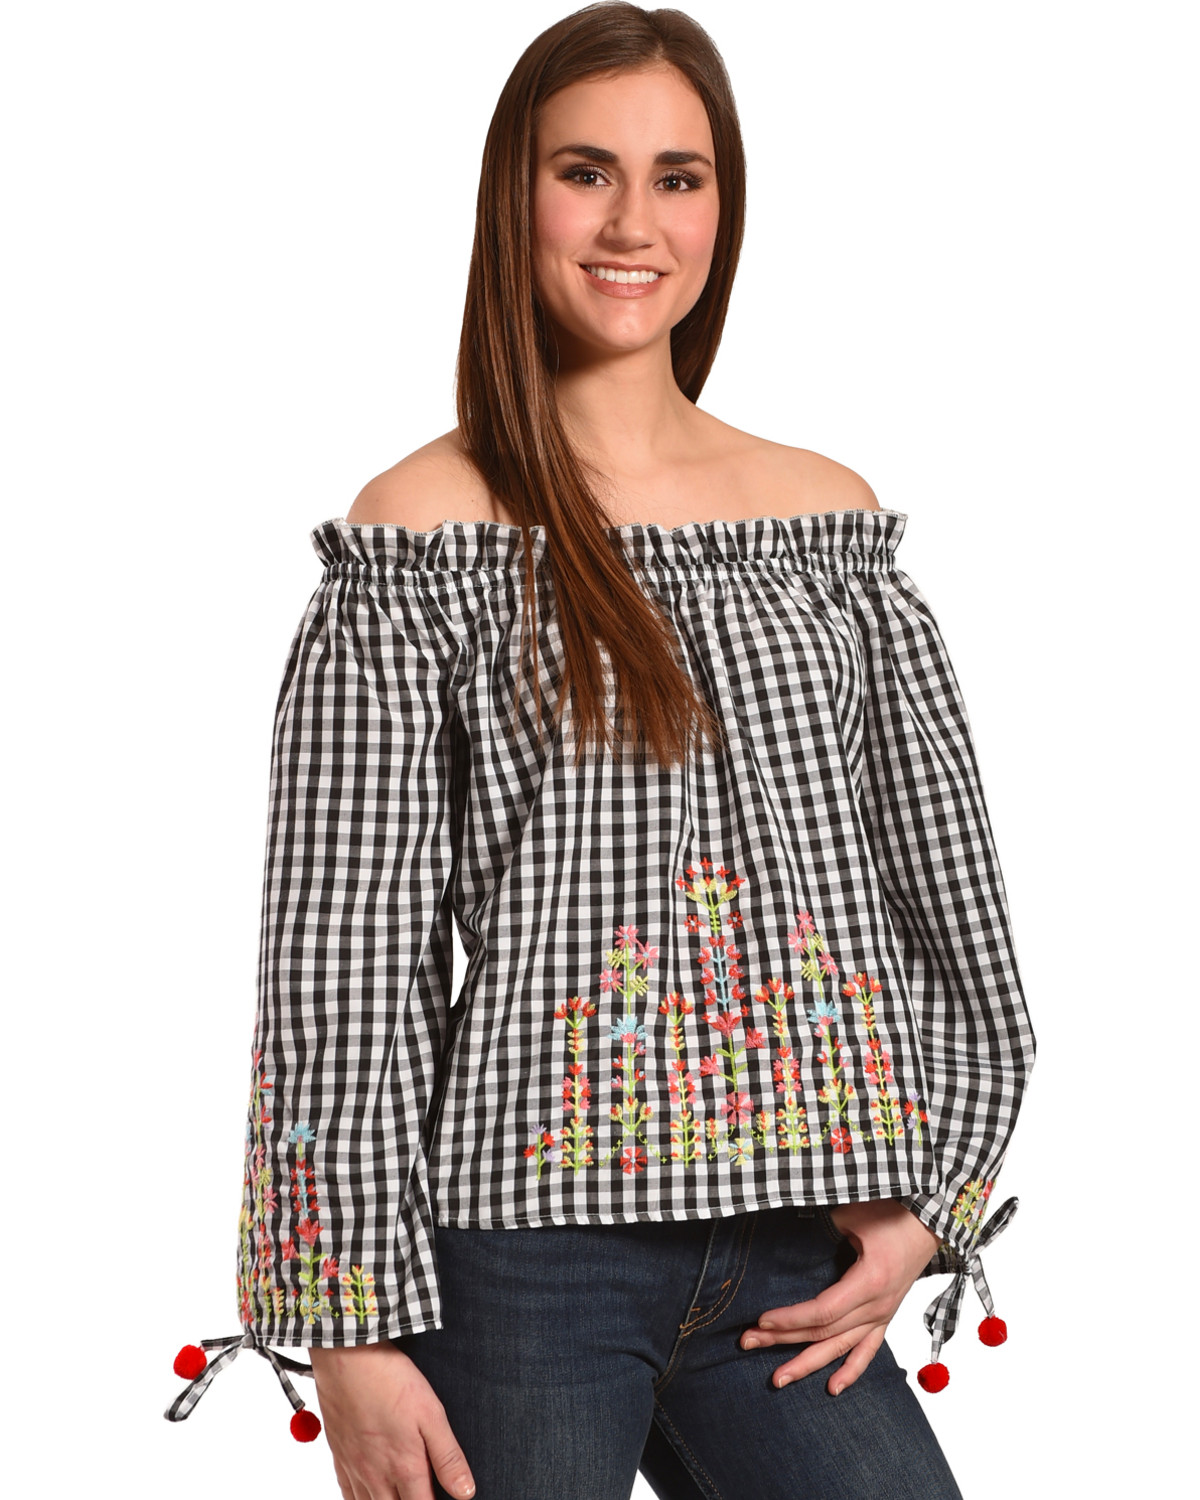 26878f18746 Derek Heart Women's Embroidered Gingham Off The Shoulder Top